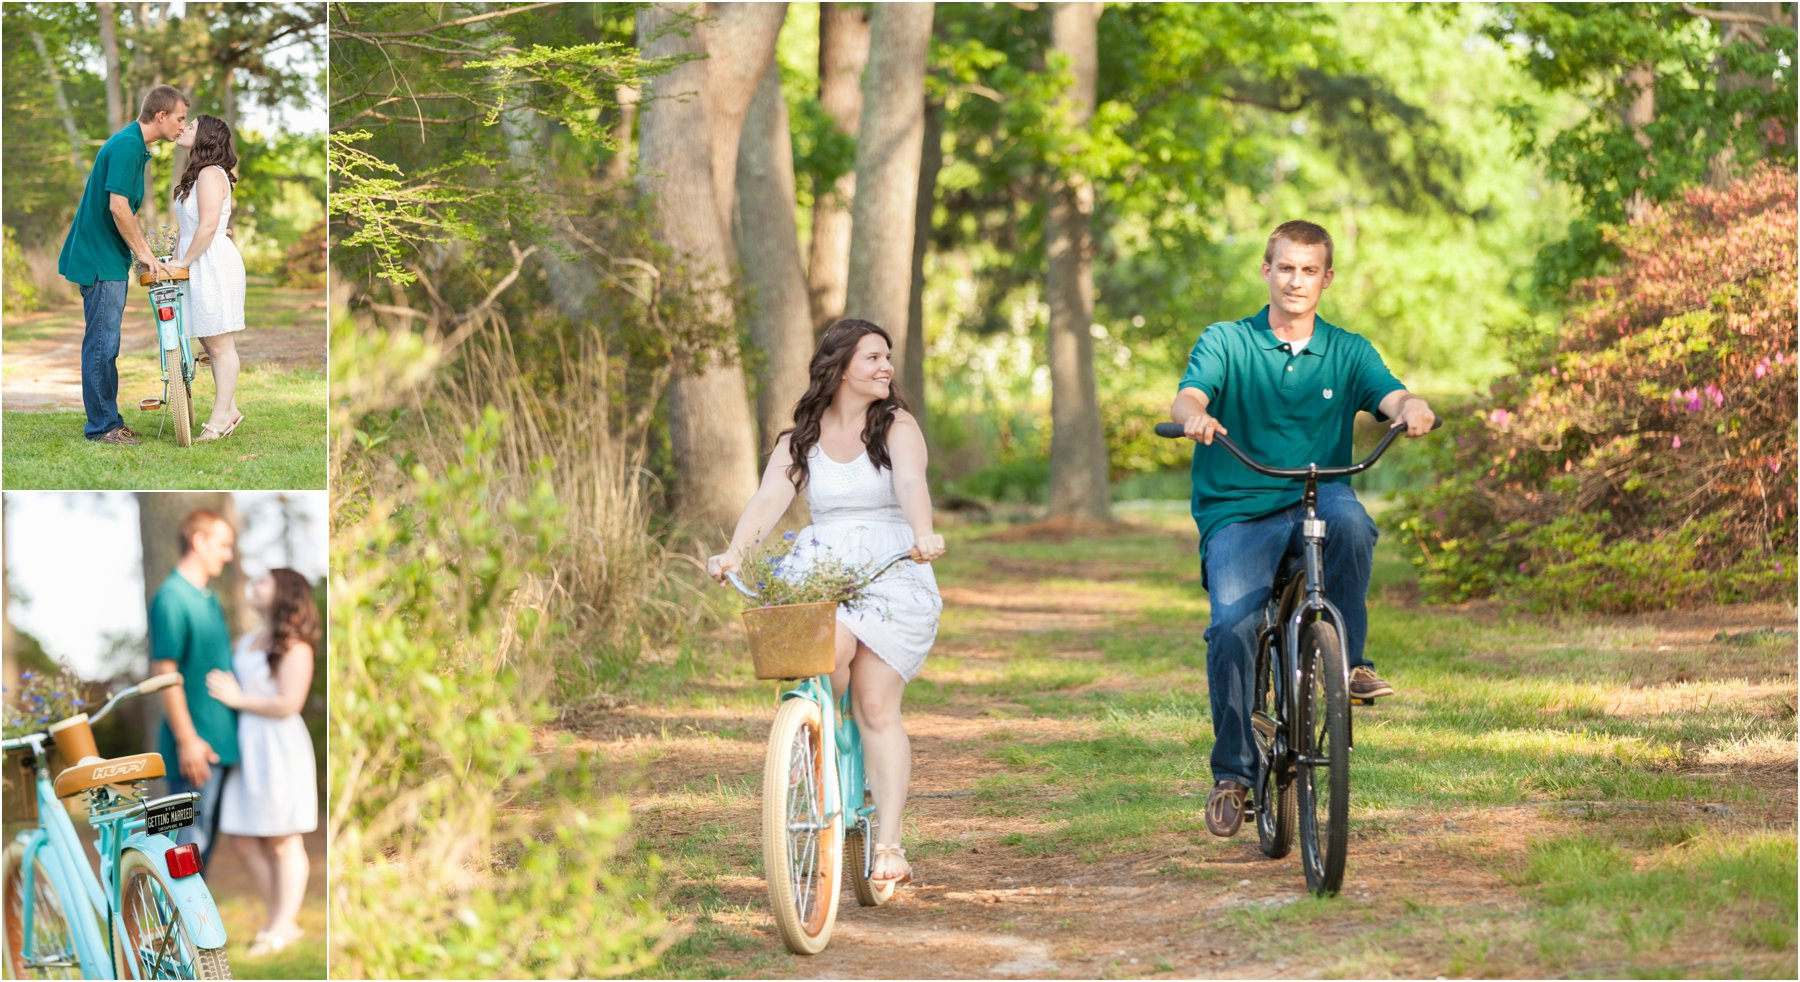 engagement_Photography_bike_ride_engagements_Jessica_Ryan_Photography_virginia_virginia_beach_0316